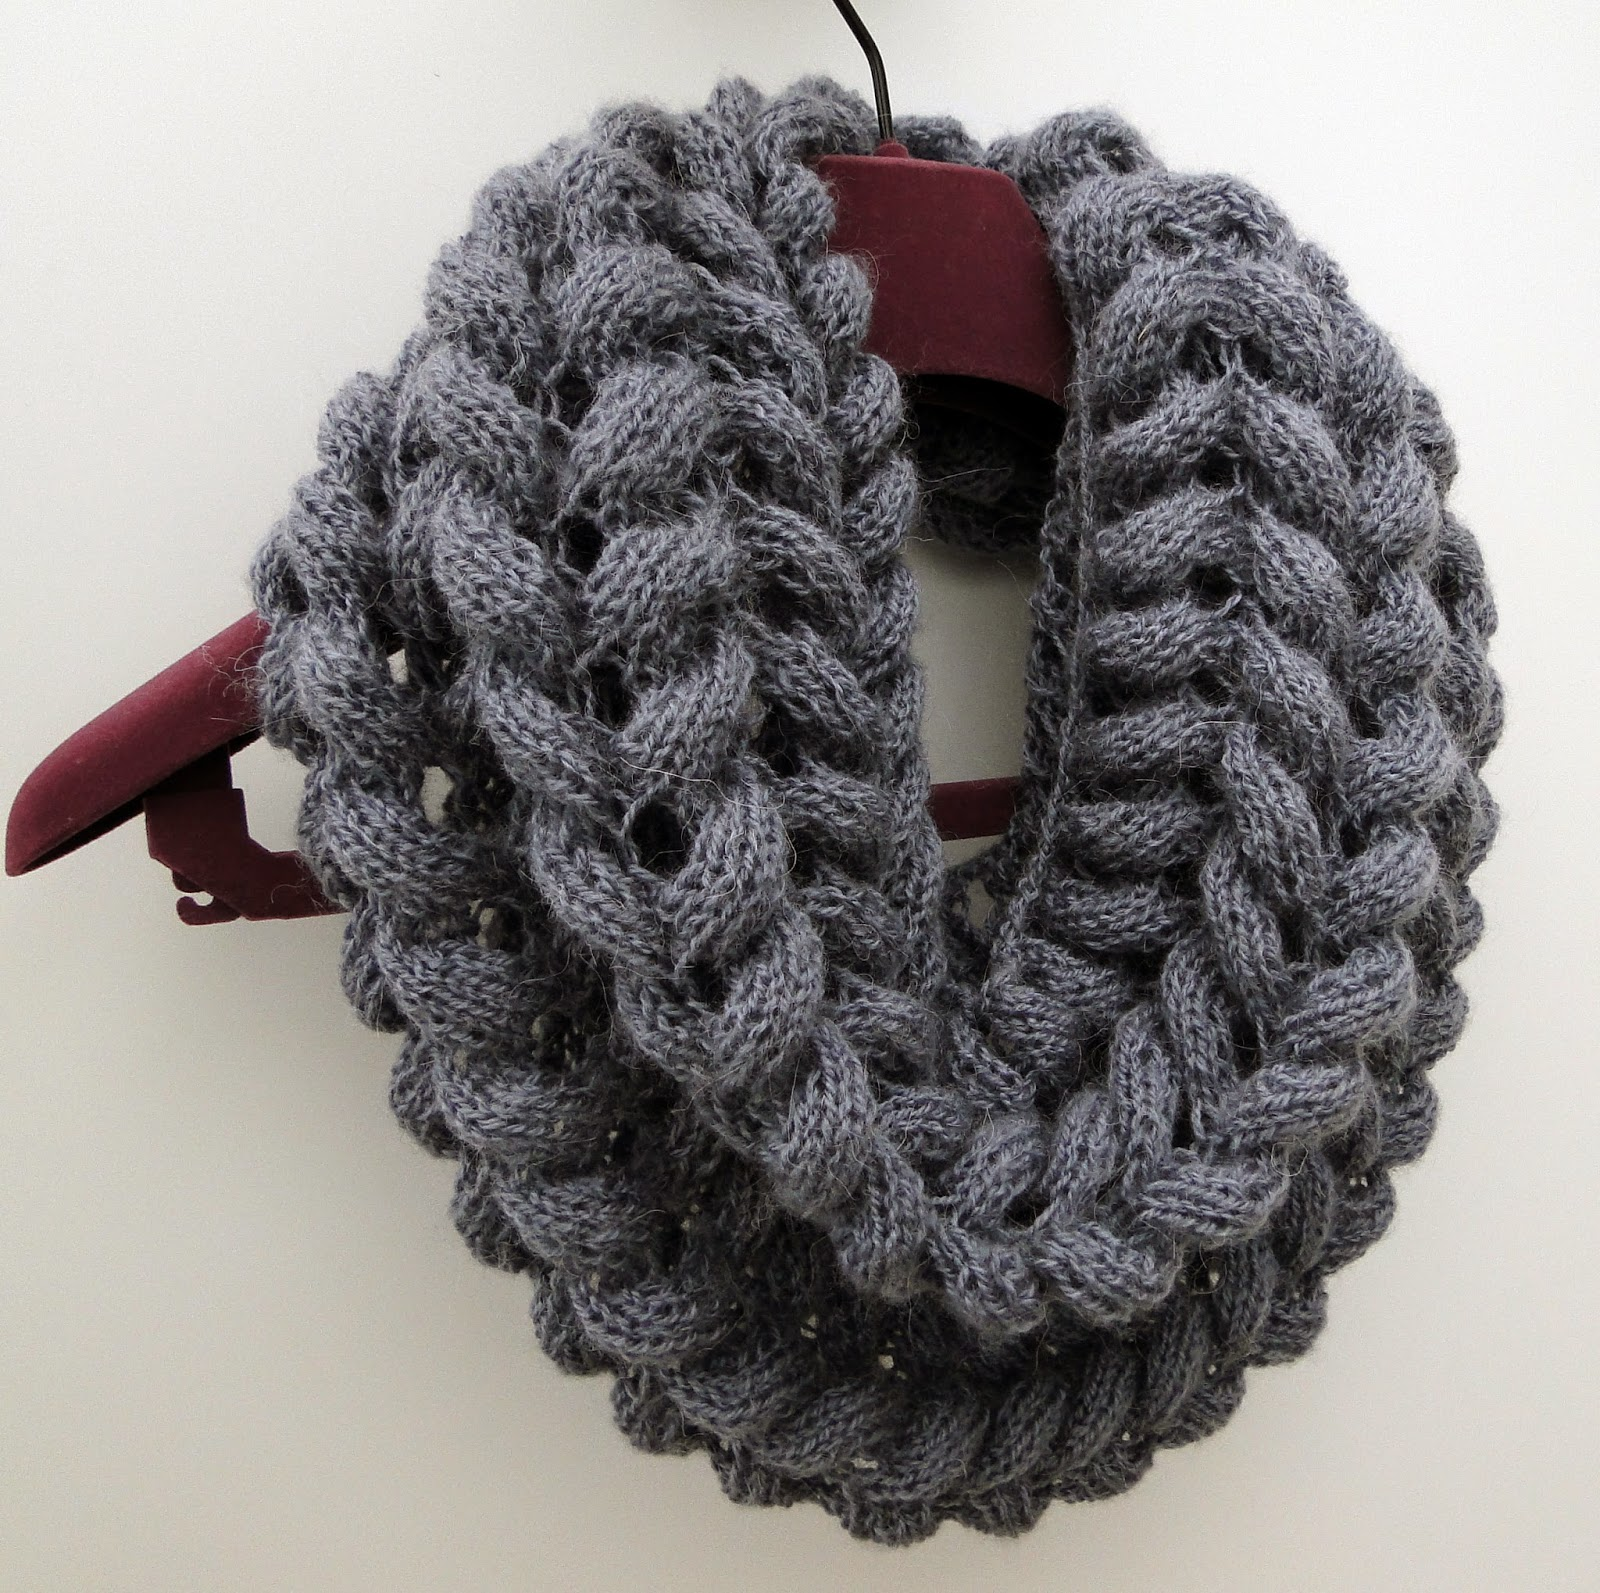 Knitting Pattern Of Scarf : 3 Rabbits Patterns: Scarf Cowl Knitting Pattern